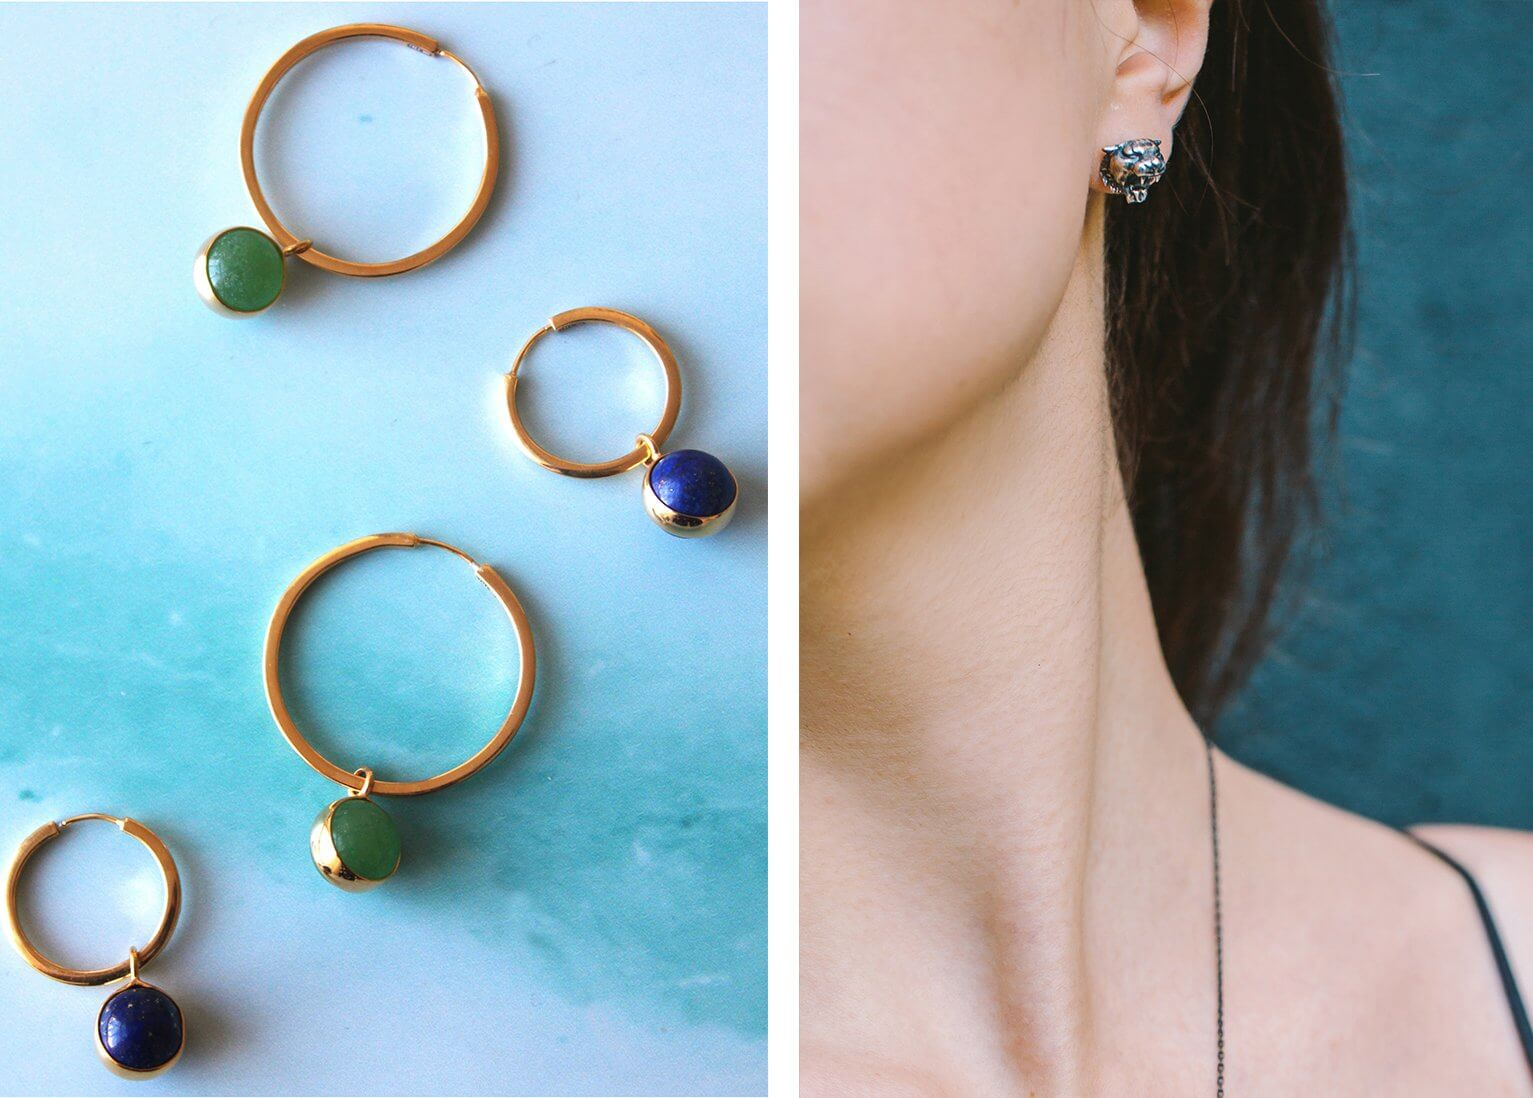 Unique lapis hoops, an elegant jewellery piece, designed by independent designer Yuka, made from sterling silver and finished in gold. Bold tiger earrings, a hand-finished statement jewellery piece, by designer Kate, made oxidized silver.